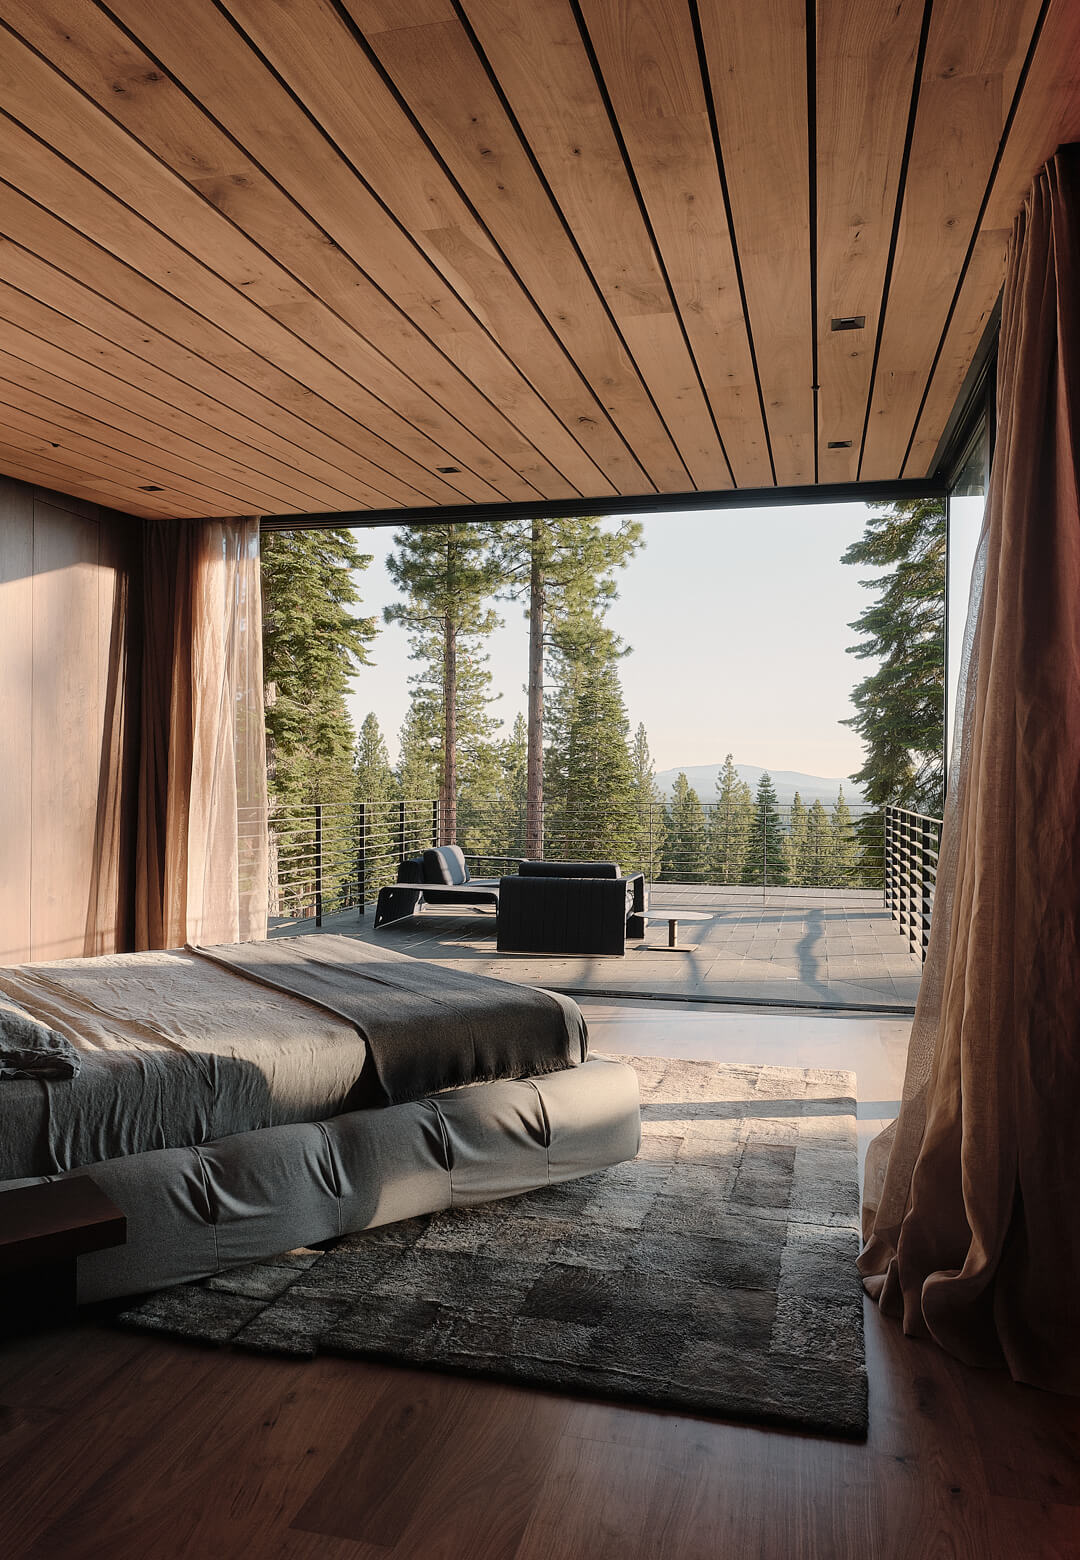 Inside the Lookout House designed by Faulkner Architects | Lookout House by Faulkner Architects | STIRworld